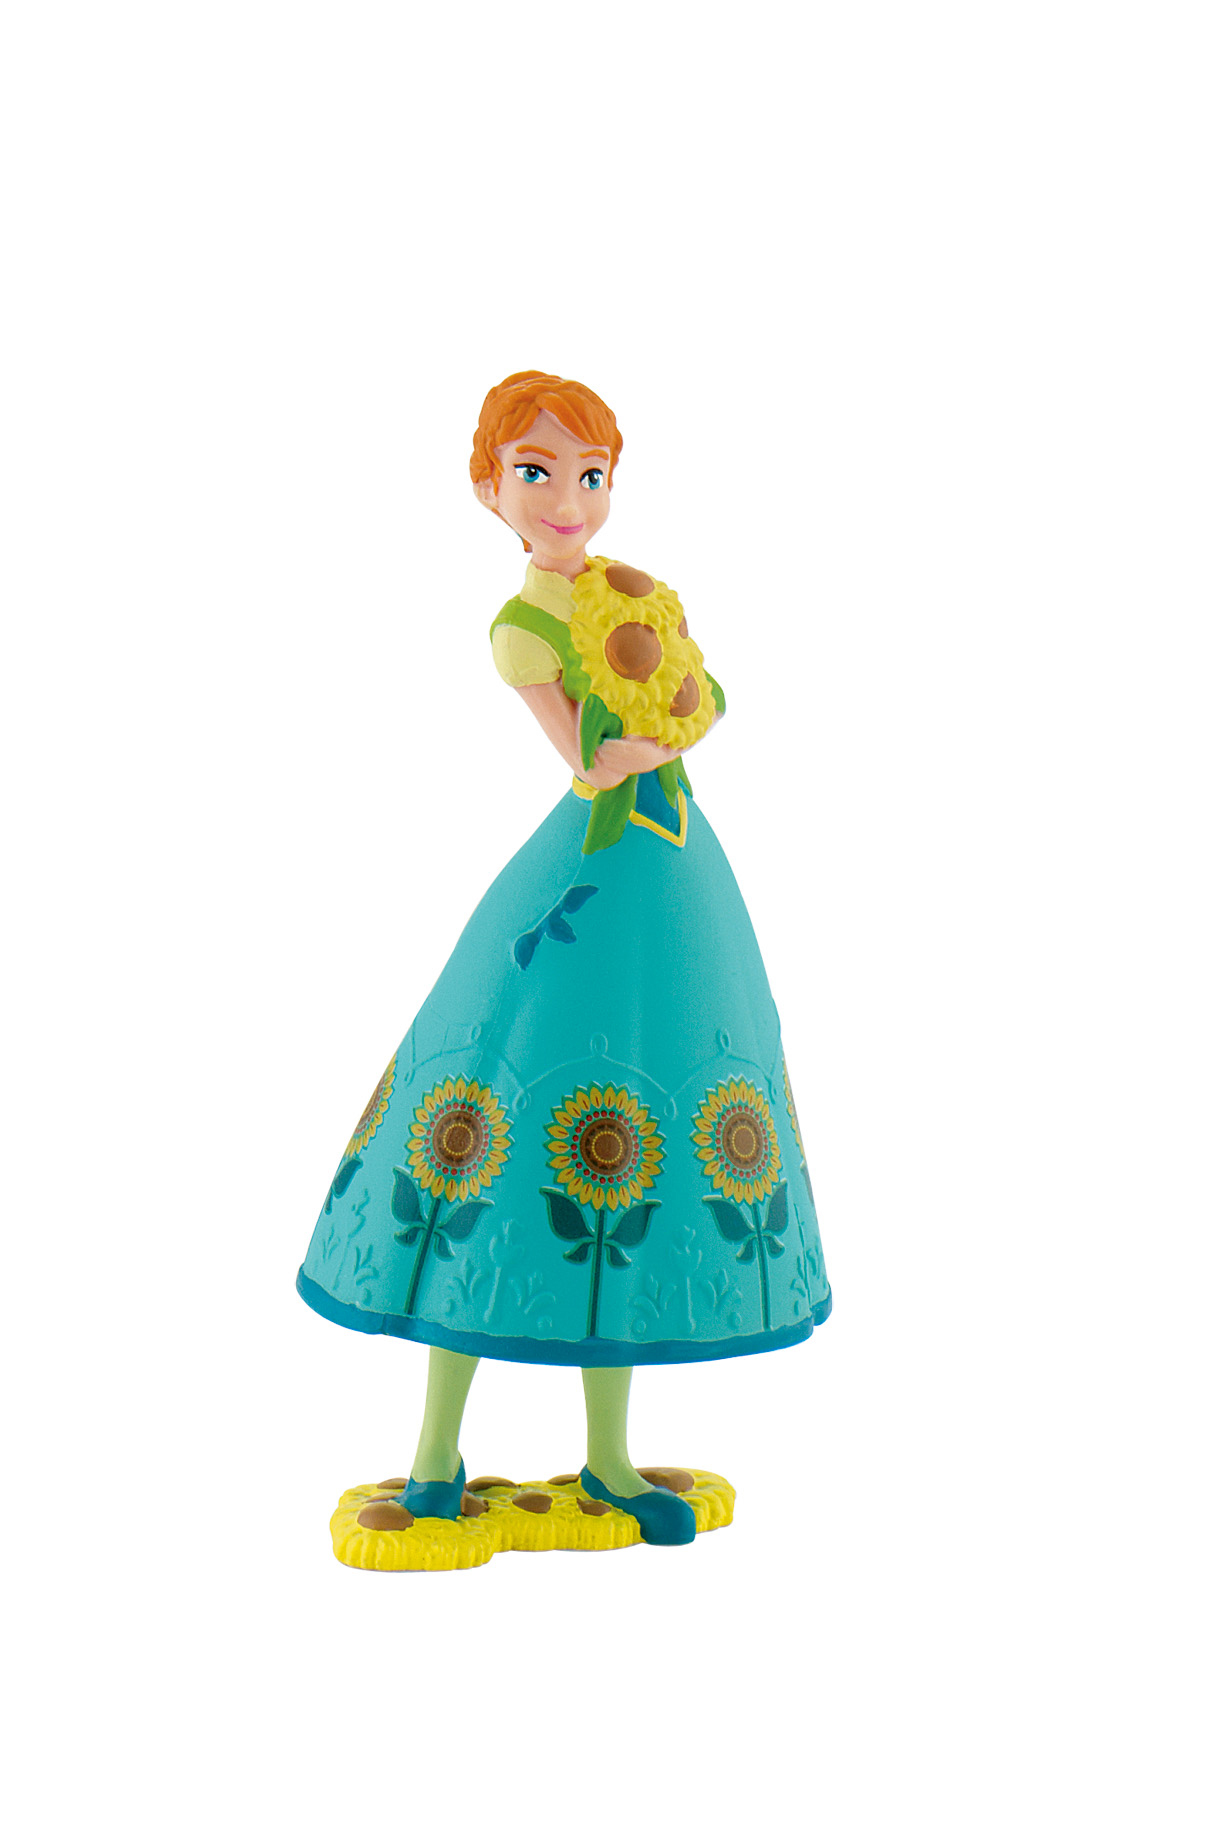 Figurine La Reine Des Neiges Disney - Anna - 10 cm